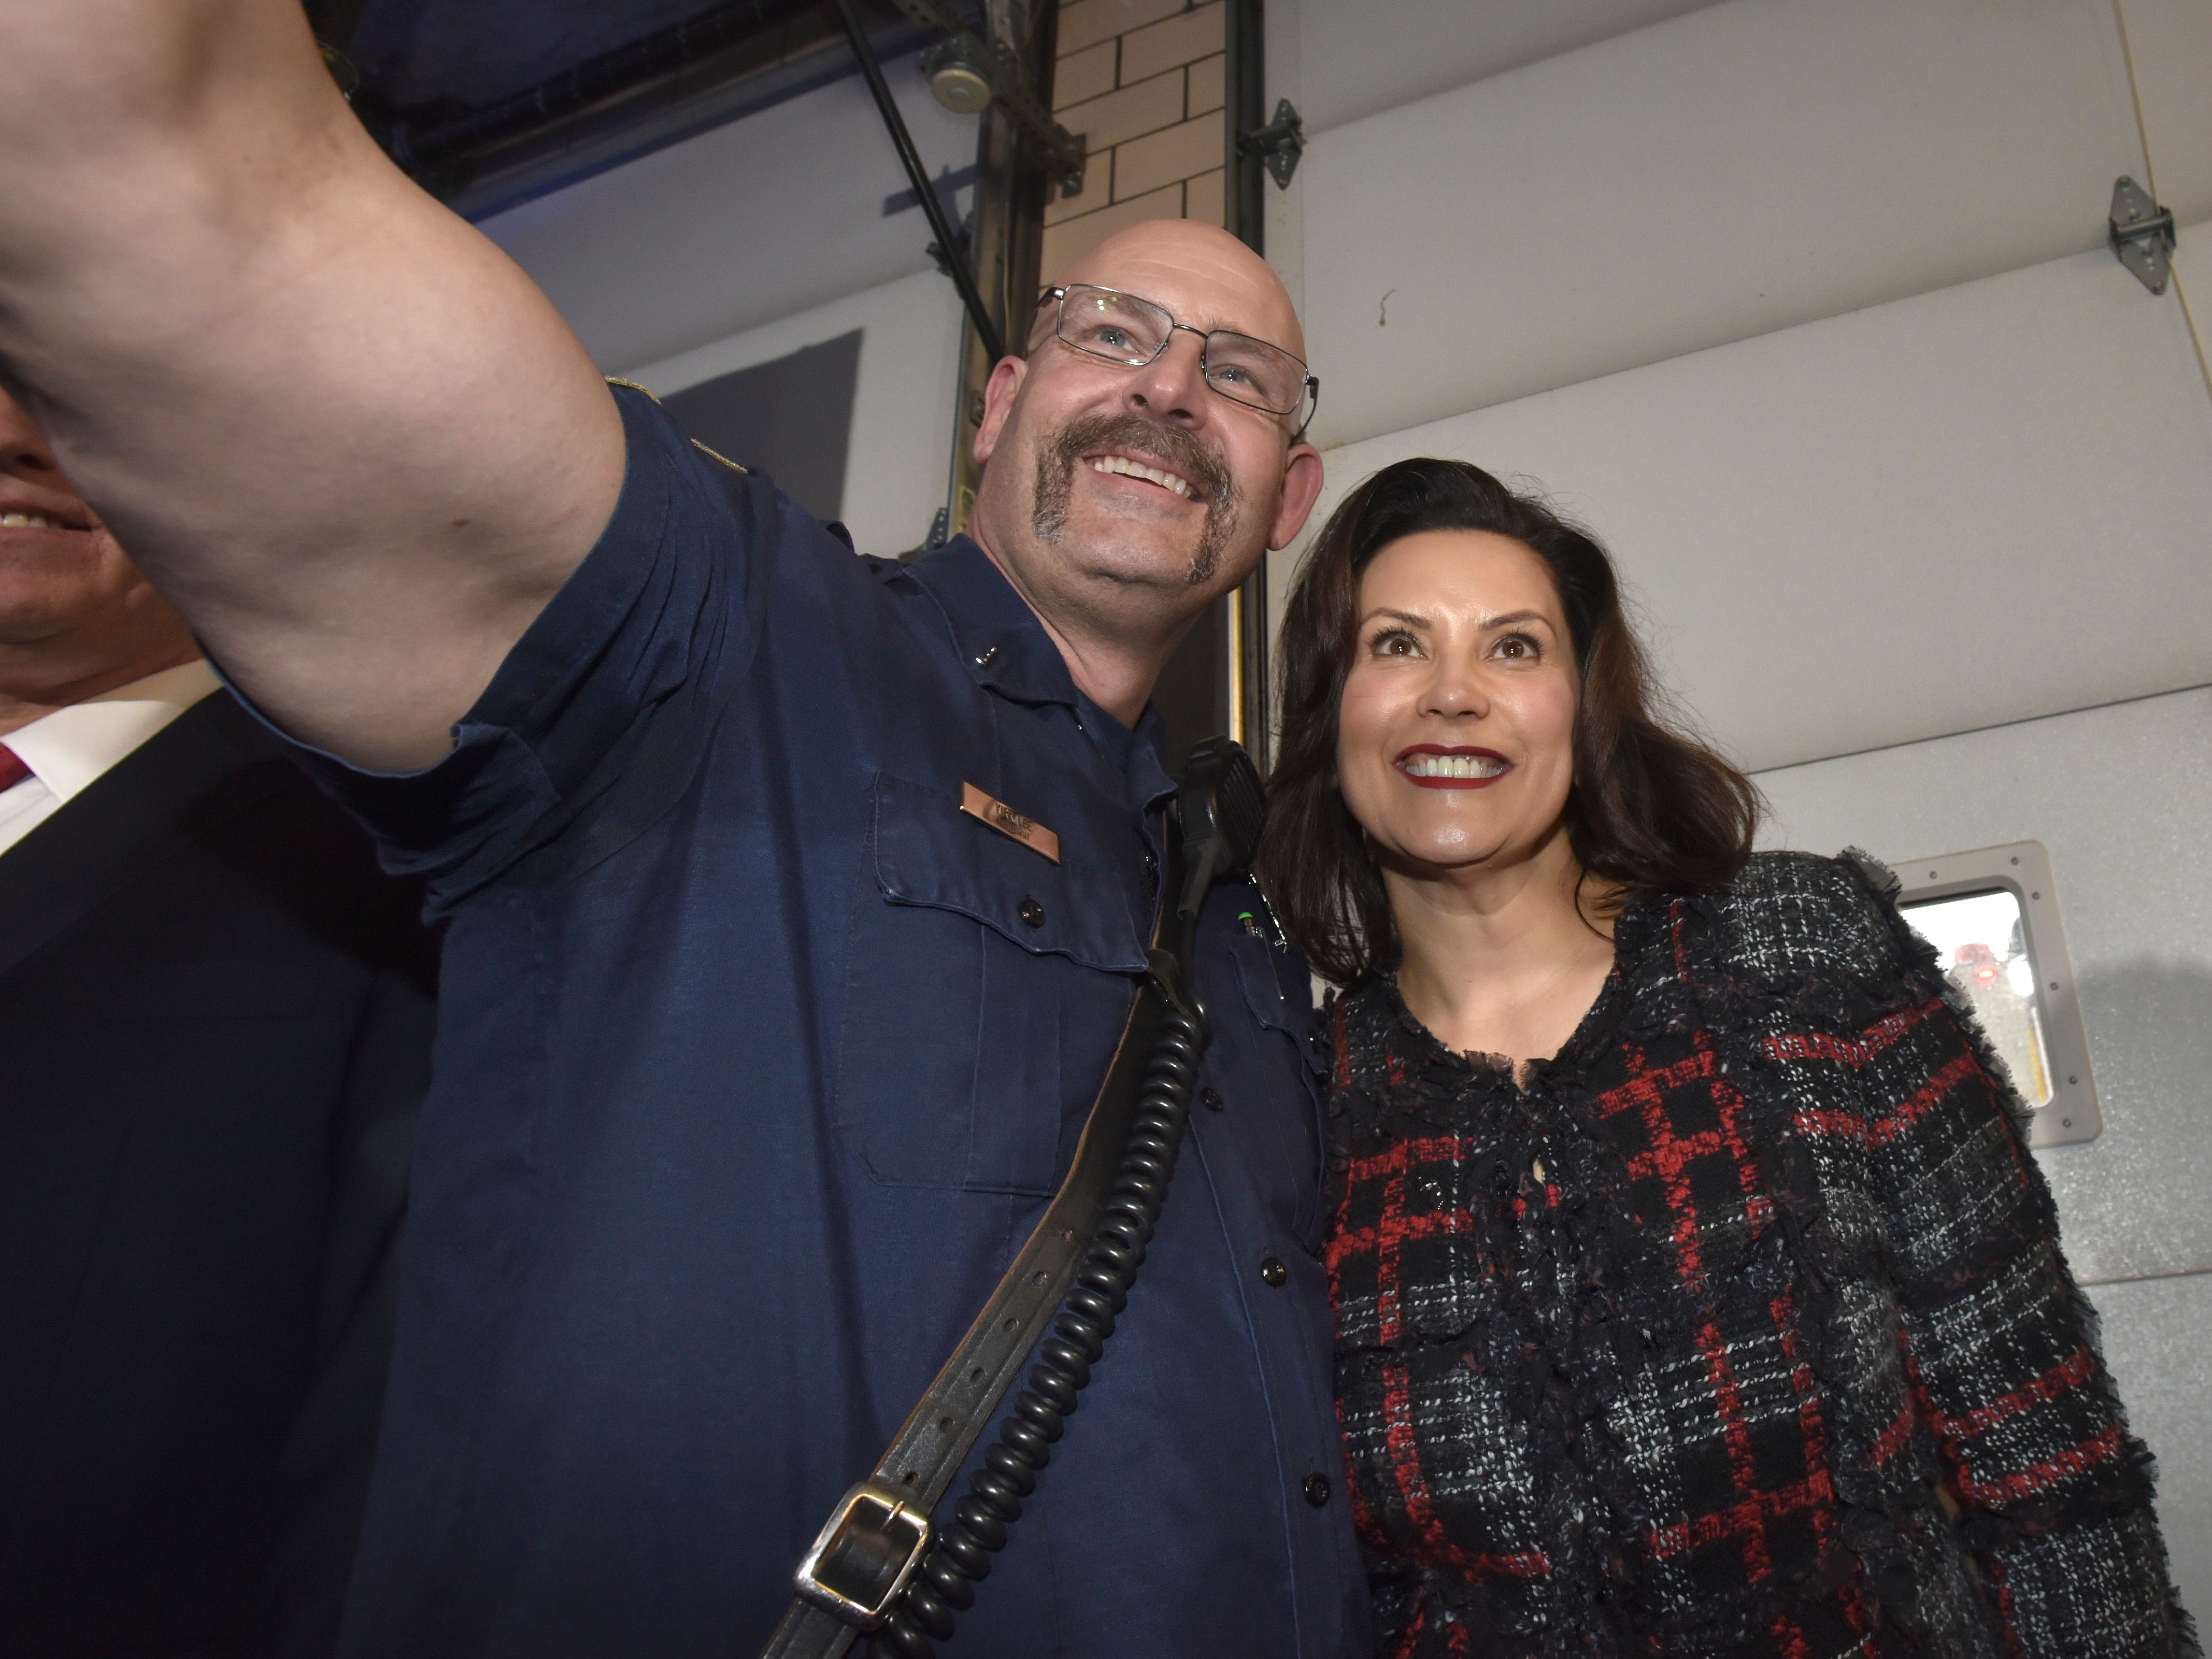 Eastpointe Fire Lt. Kirk Lee, left, takes a selfie with Michigan Governor Gretchen Whitmer after the press conference.